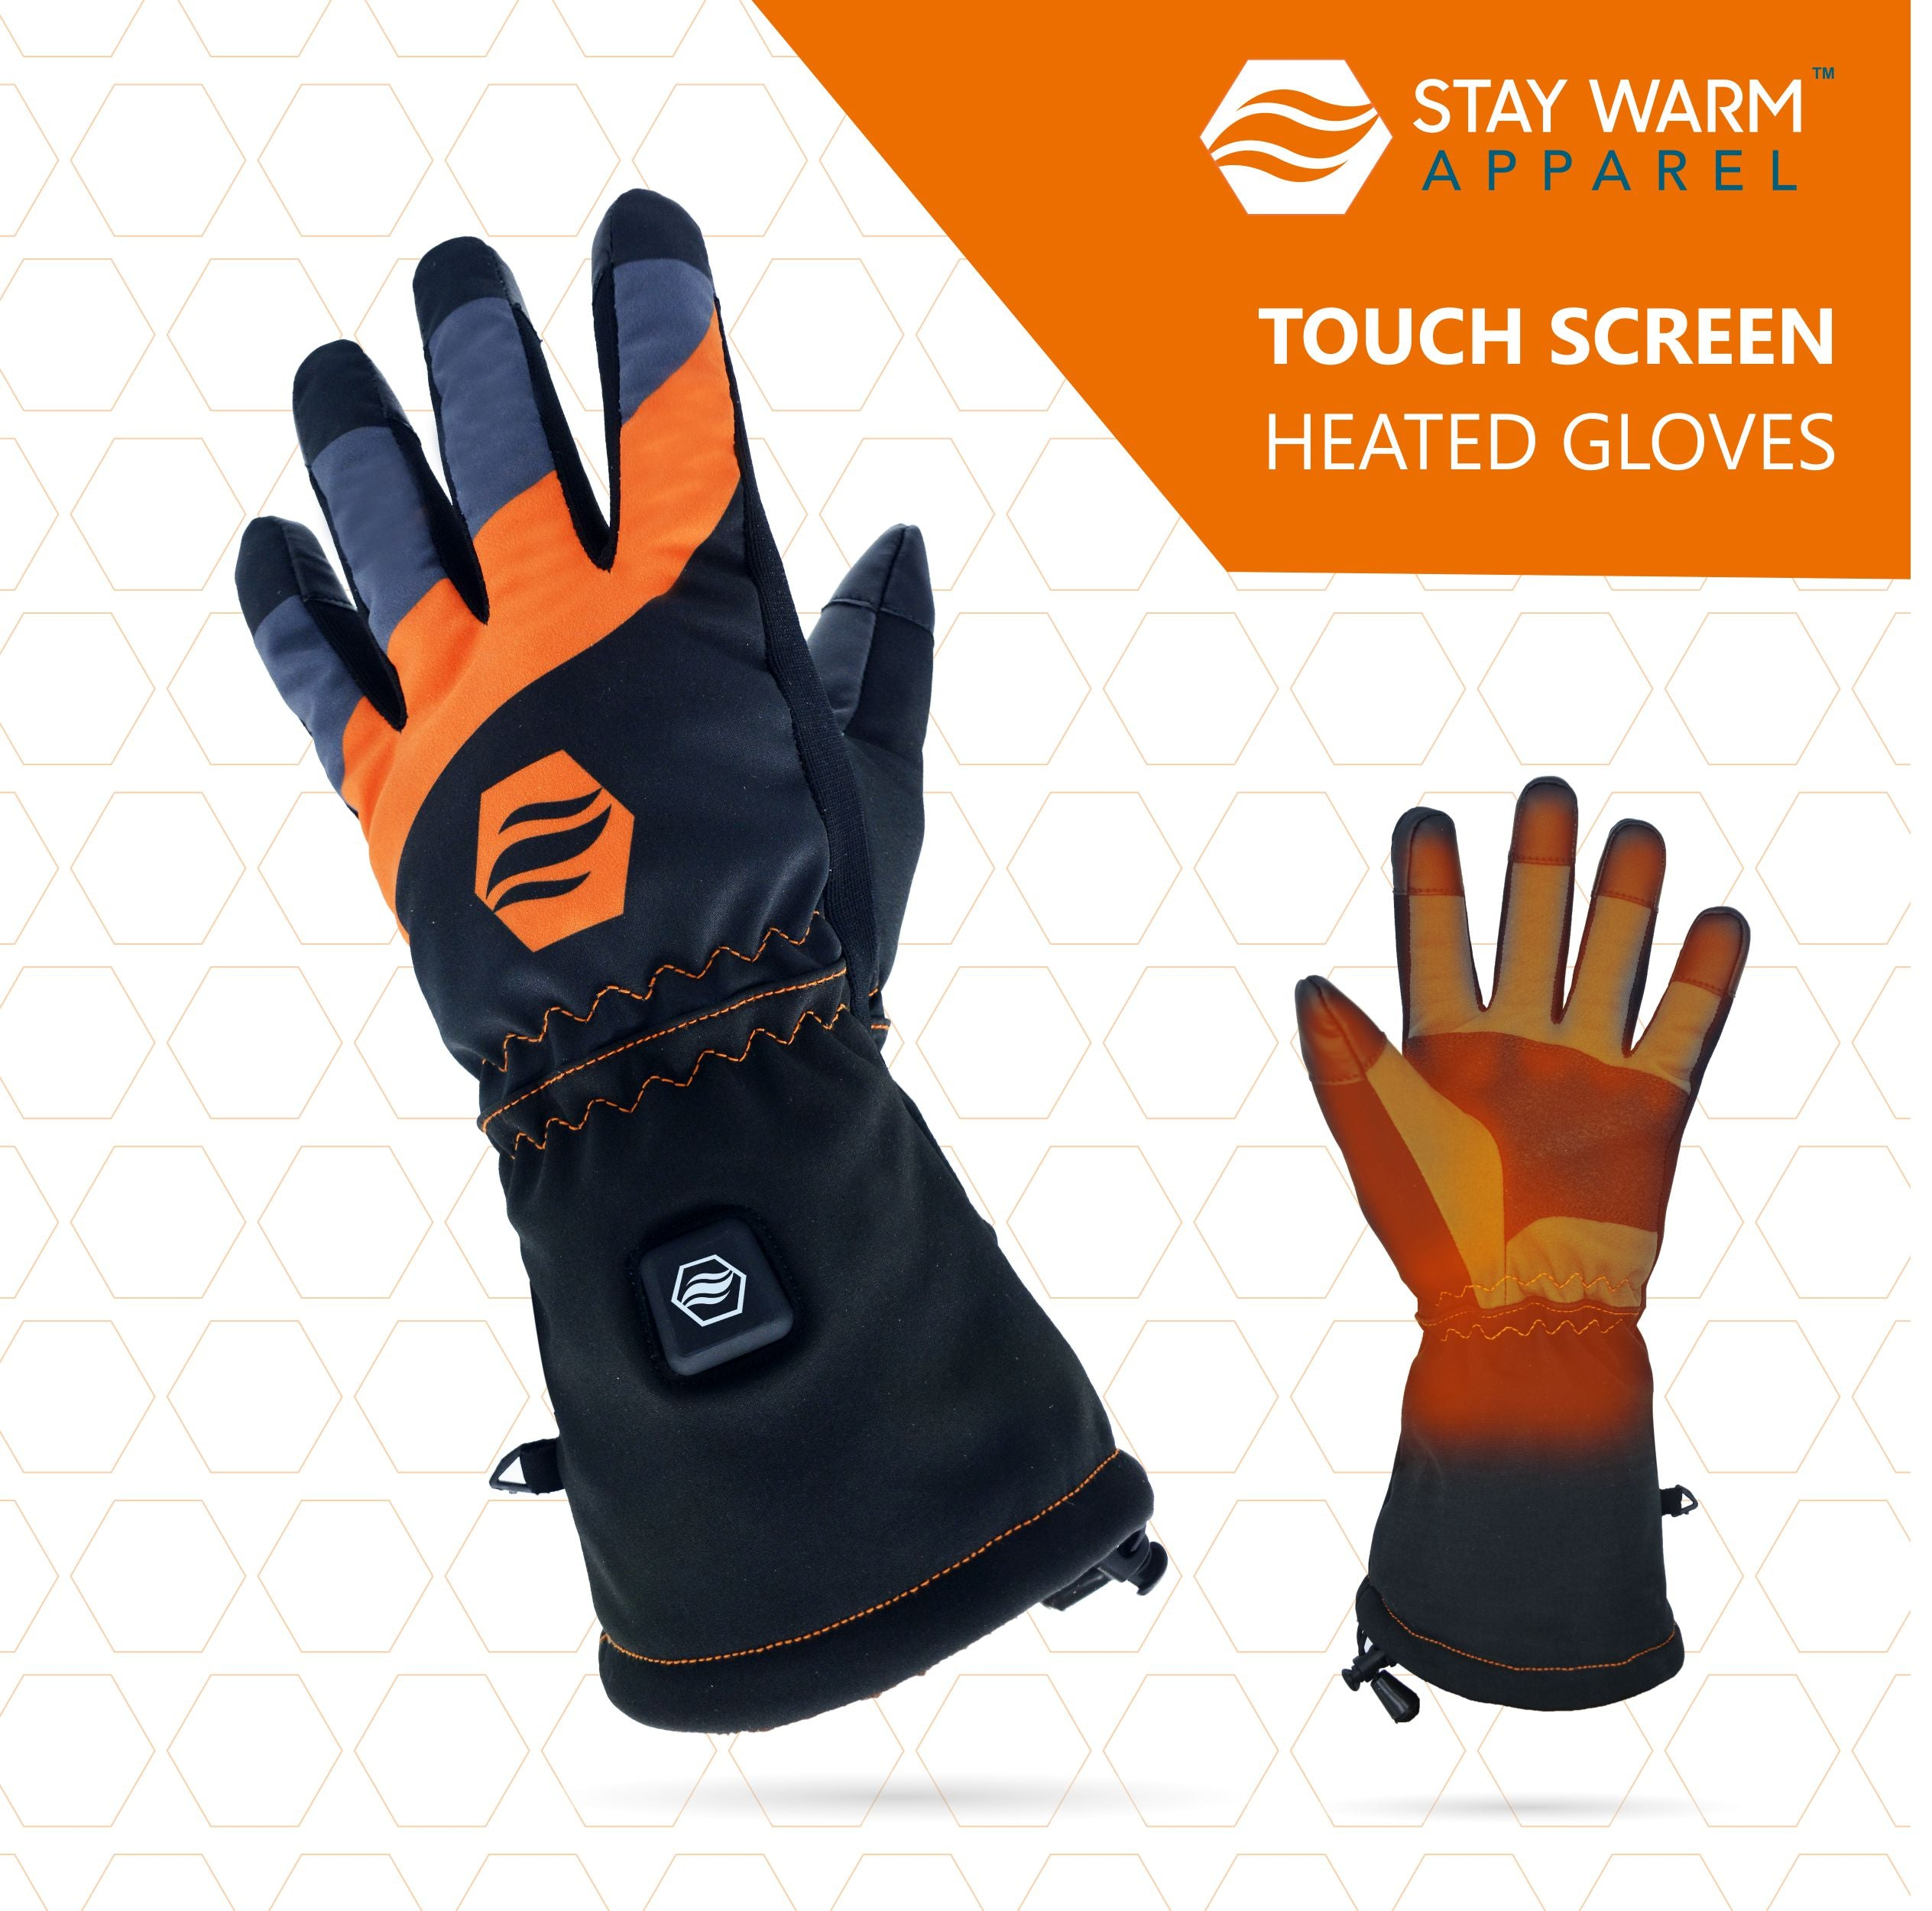 12V Touchscreen & Long Lasting Heated Gloves